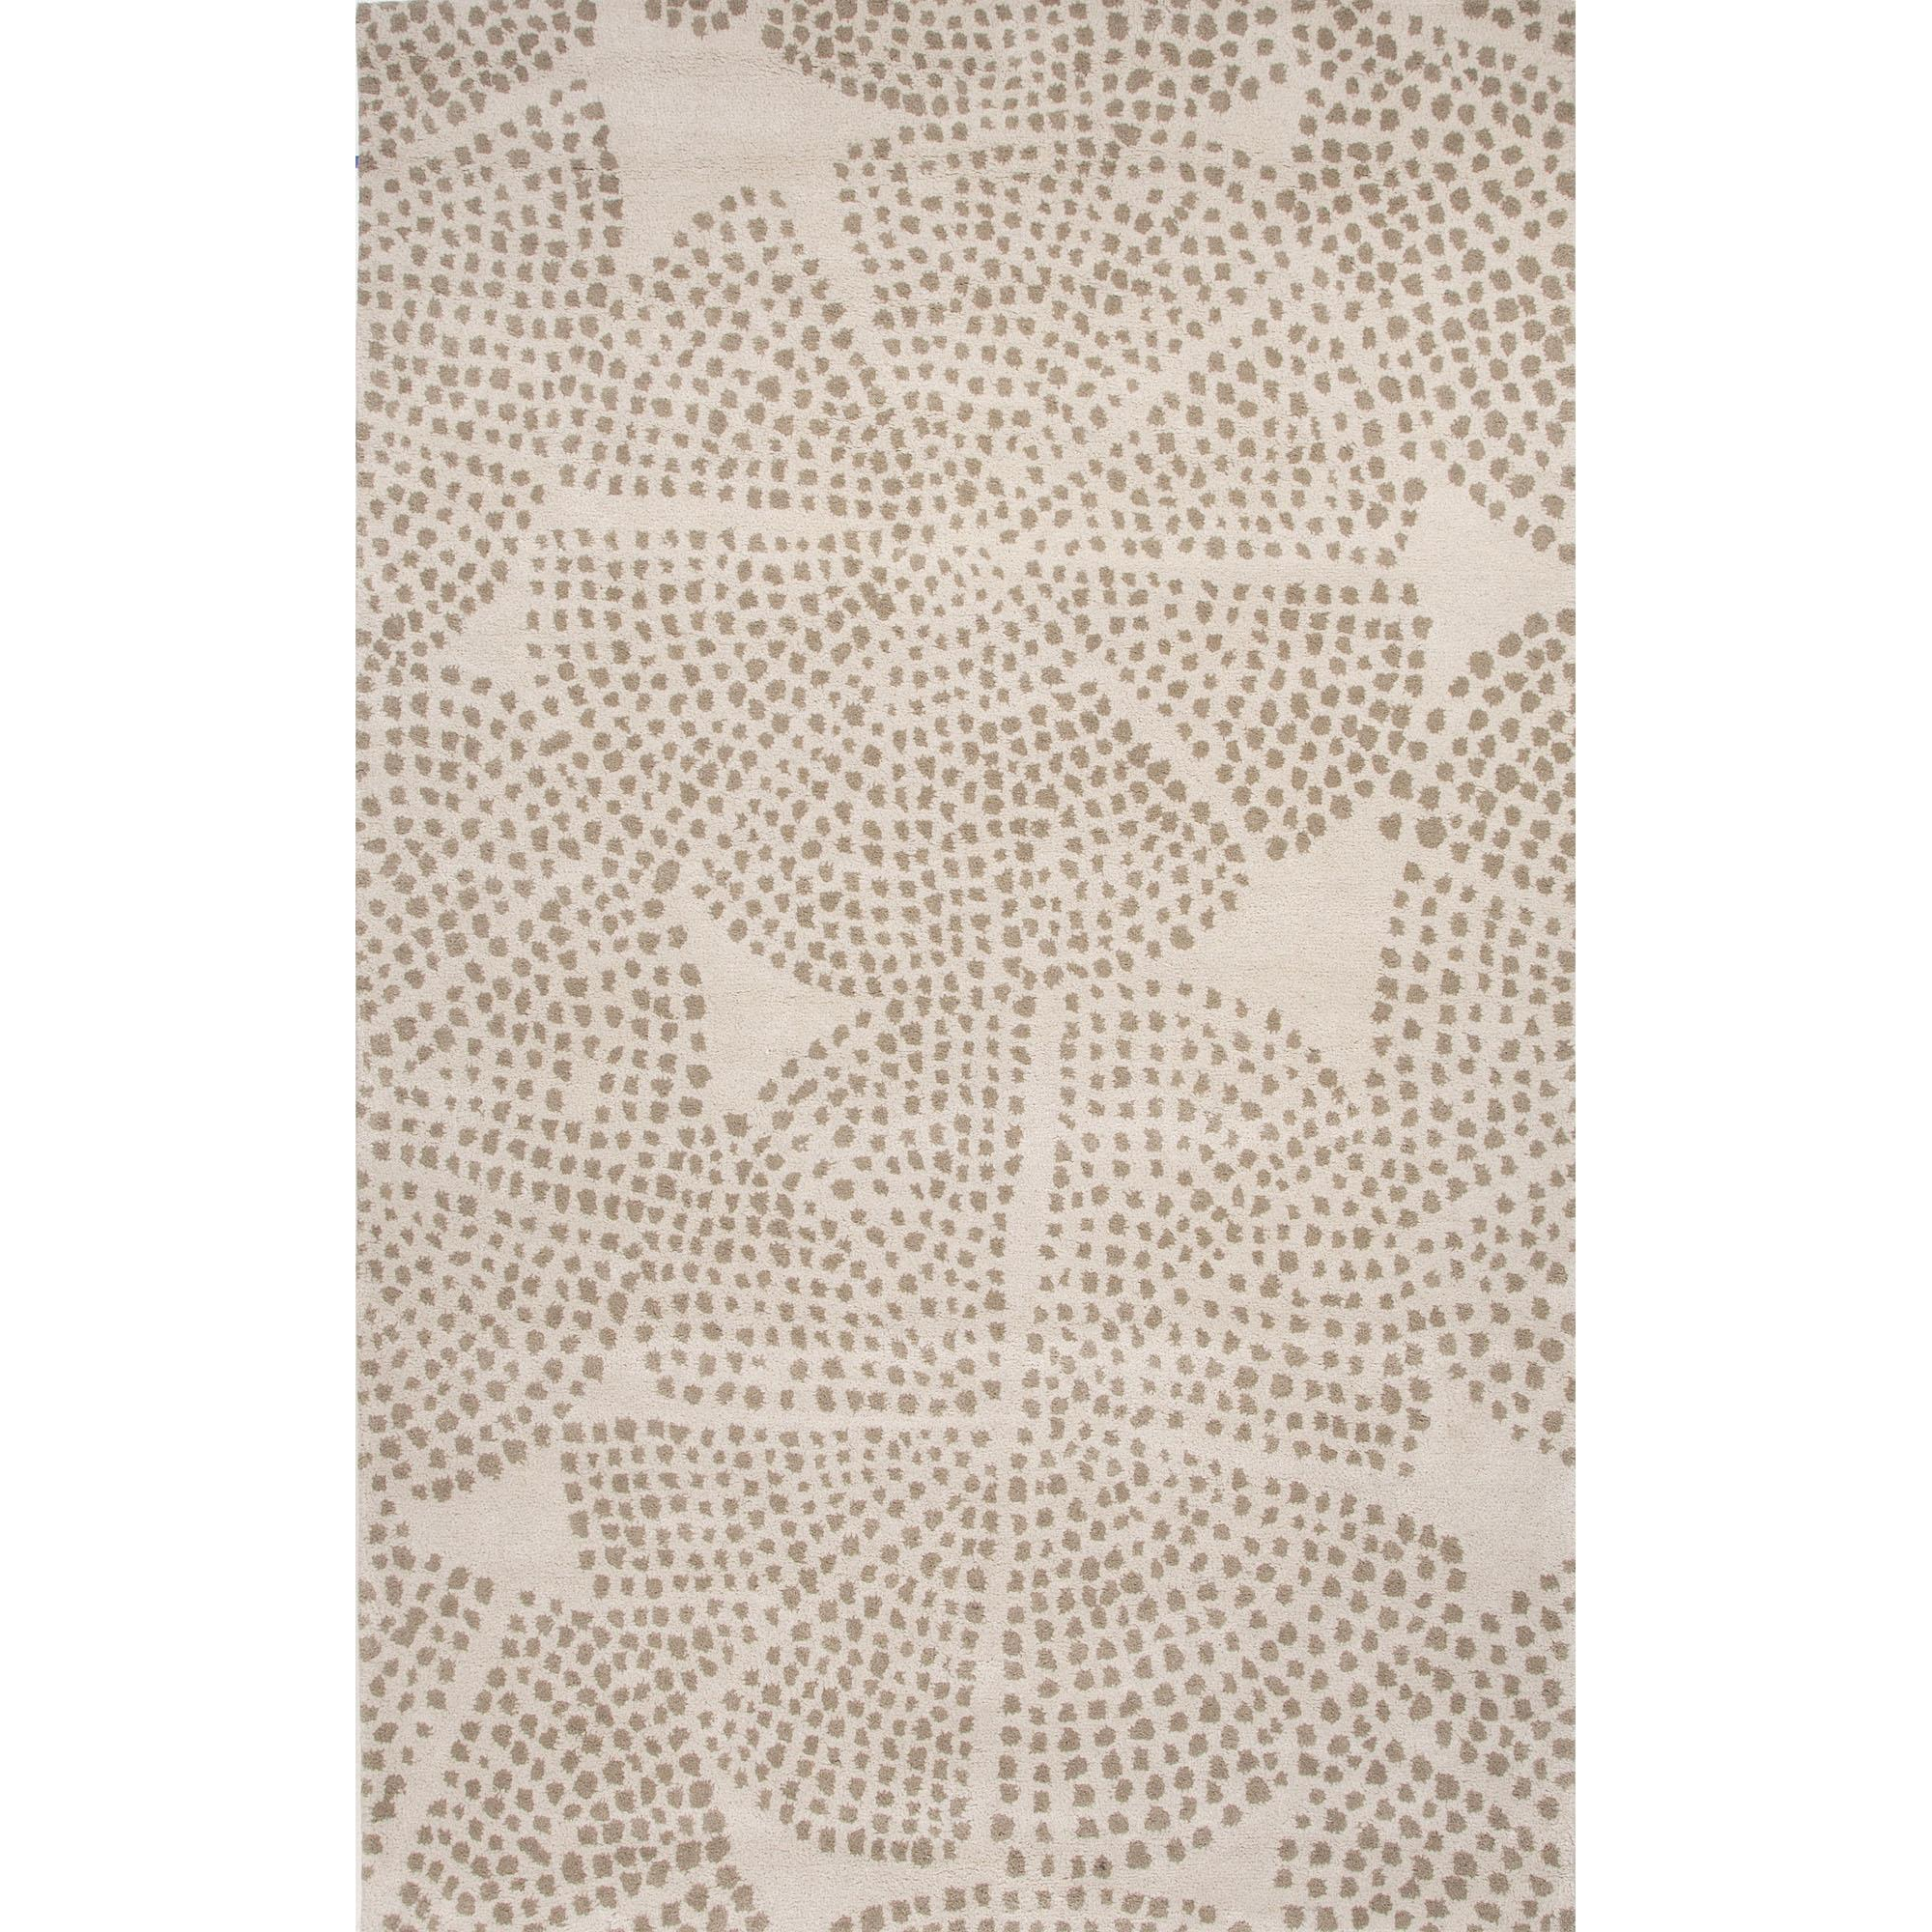 JAIPUR Rugs En Casa By Luli Sanchez Tufted 8 x 11 Rug - Item Number: RUG118135